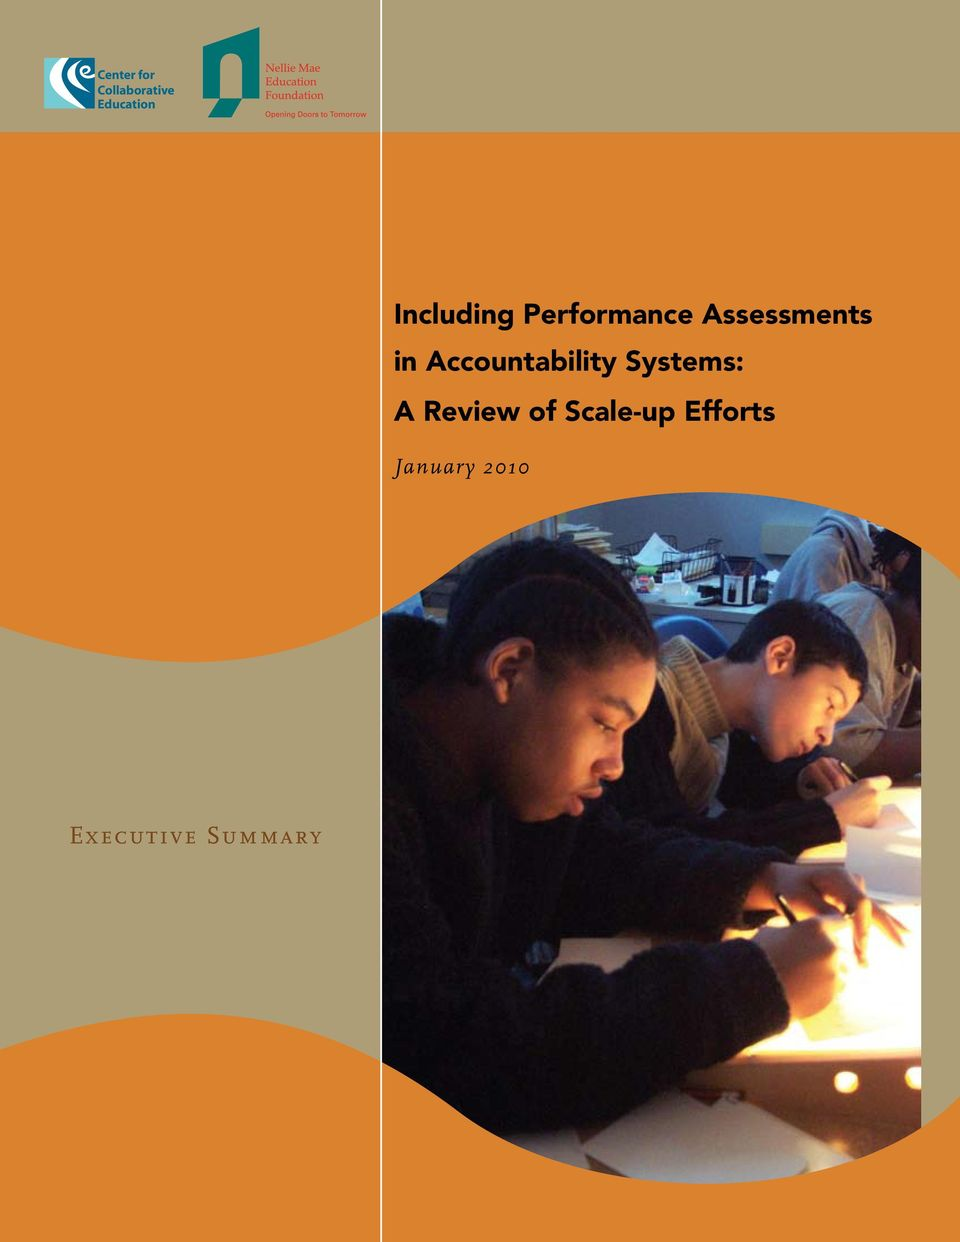 Accountability Systems: A Review of